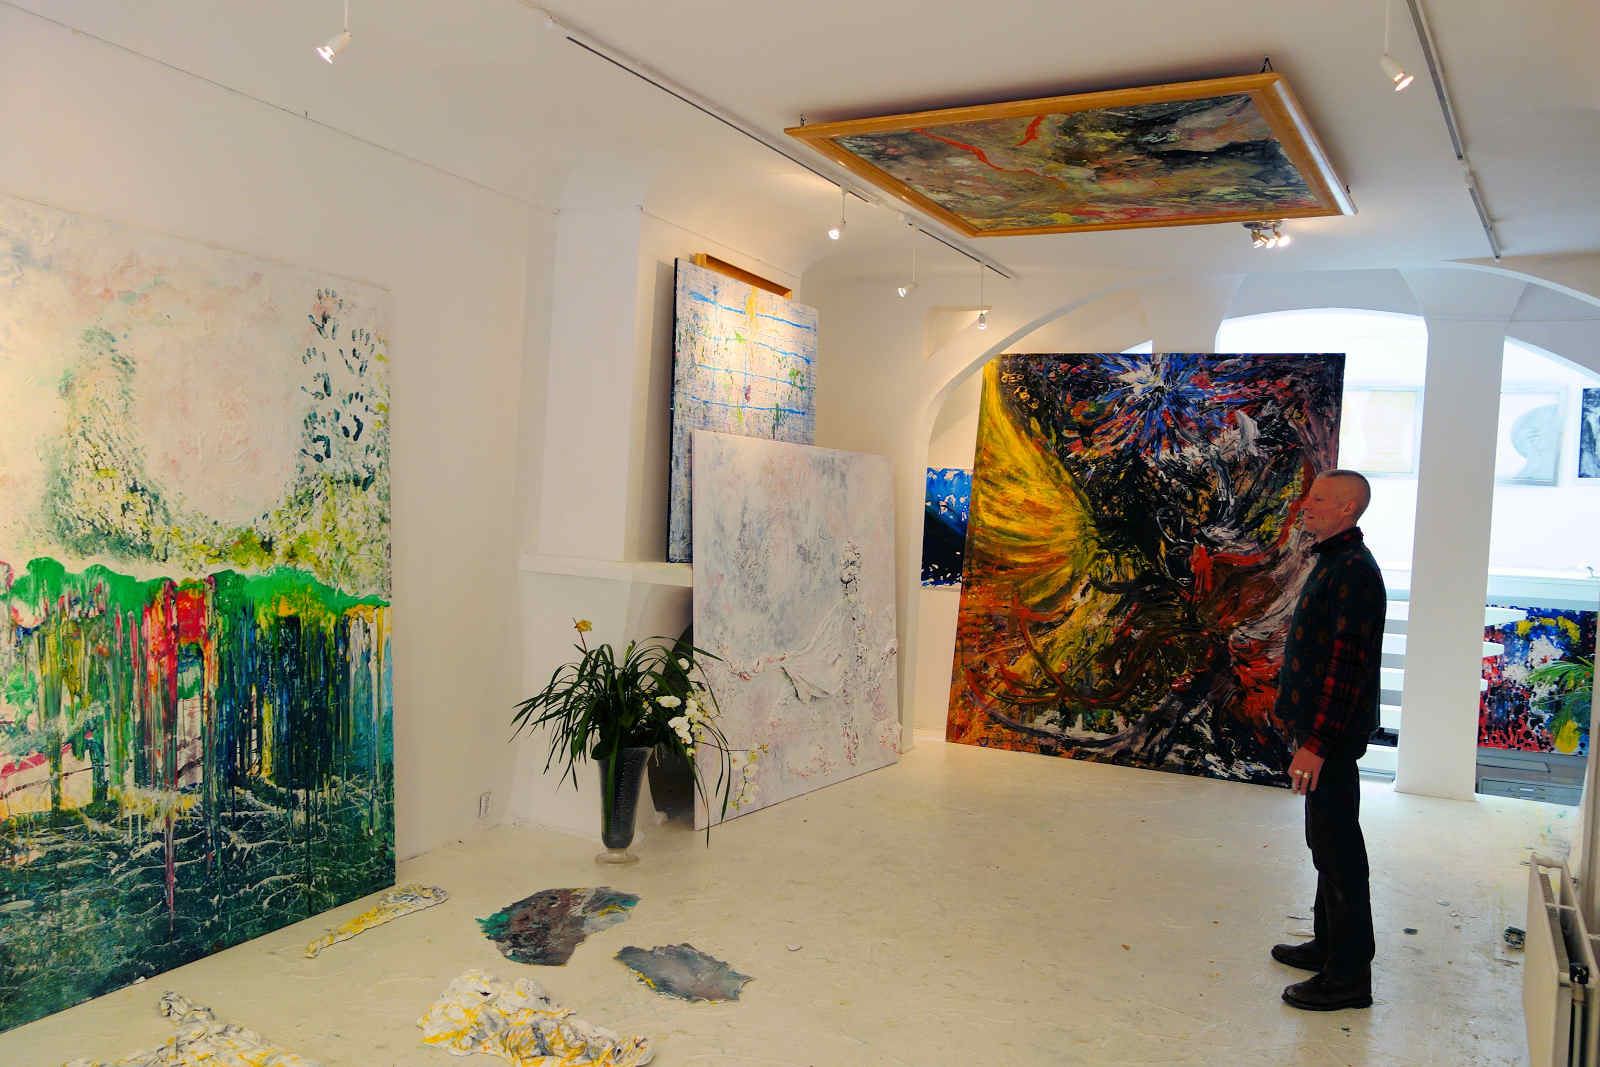 Harry van Gestel with one of his large paintings displayed on the ceiling